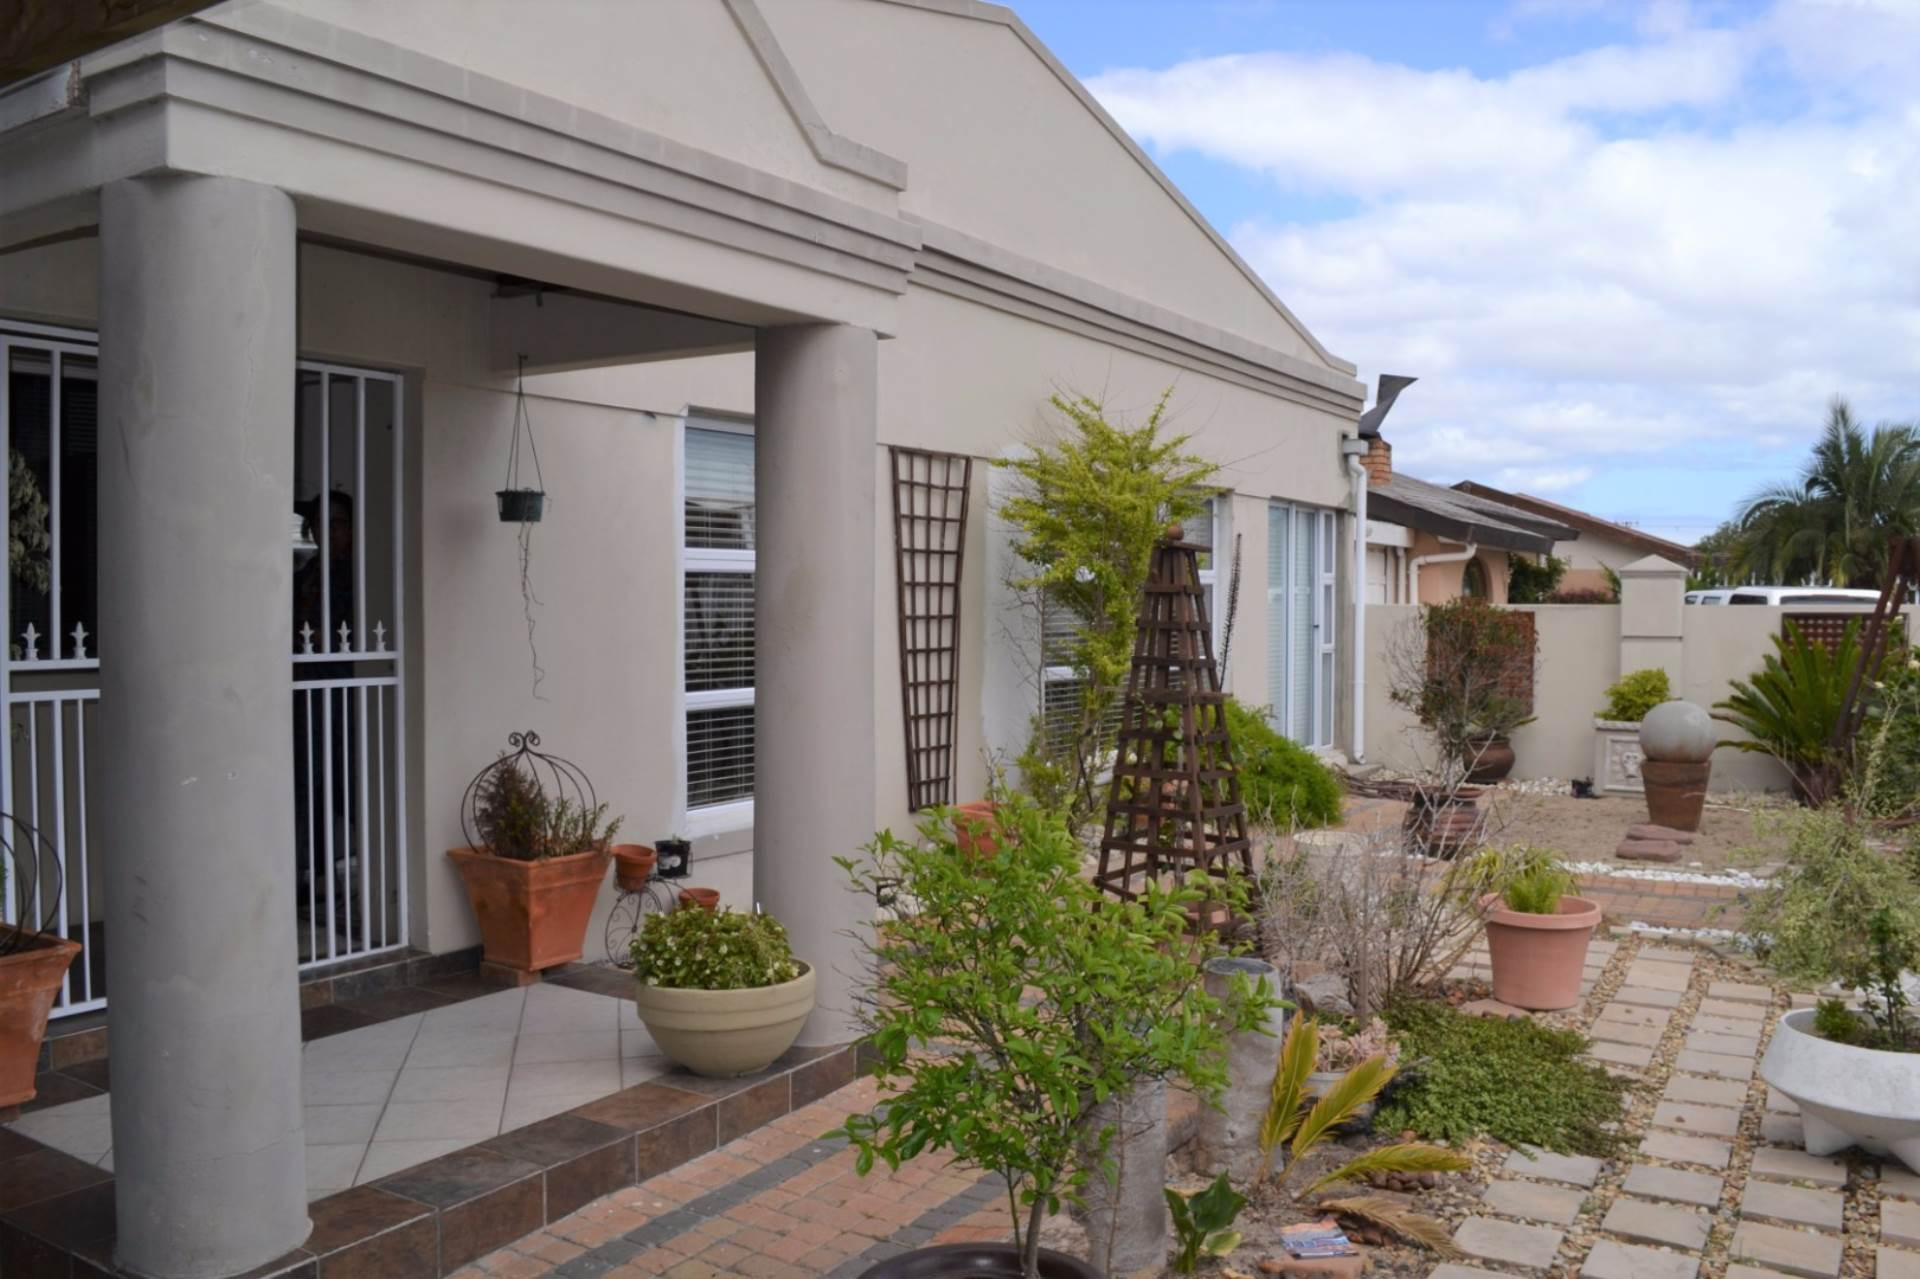 4 BedroomHouse For Sale In Goodwood